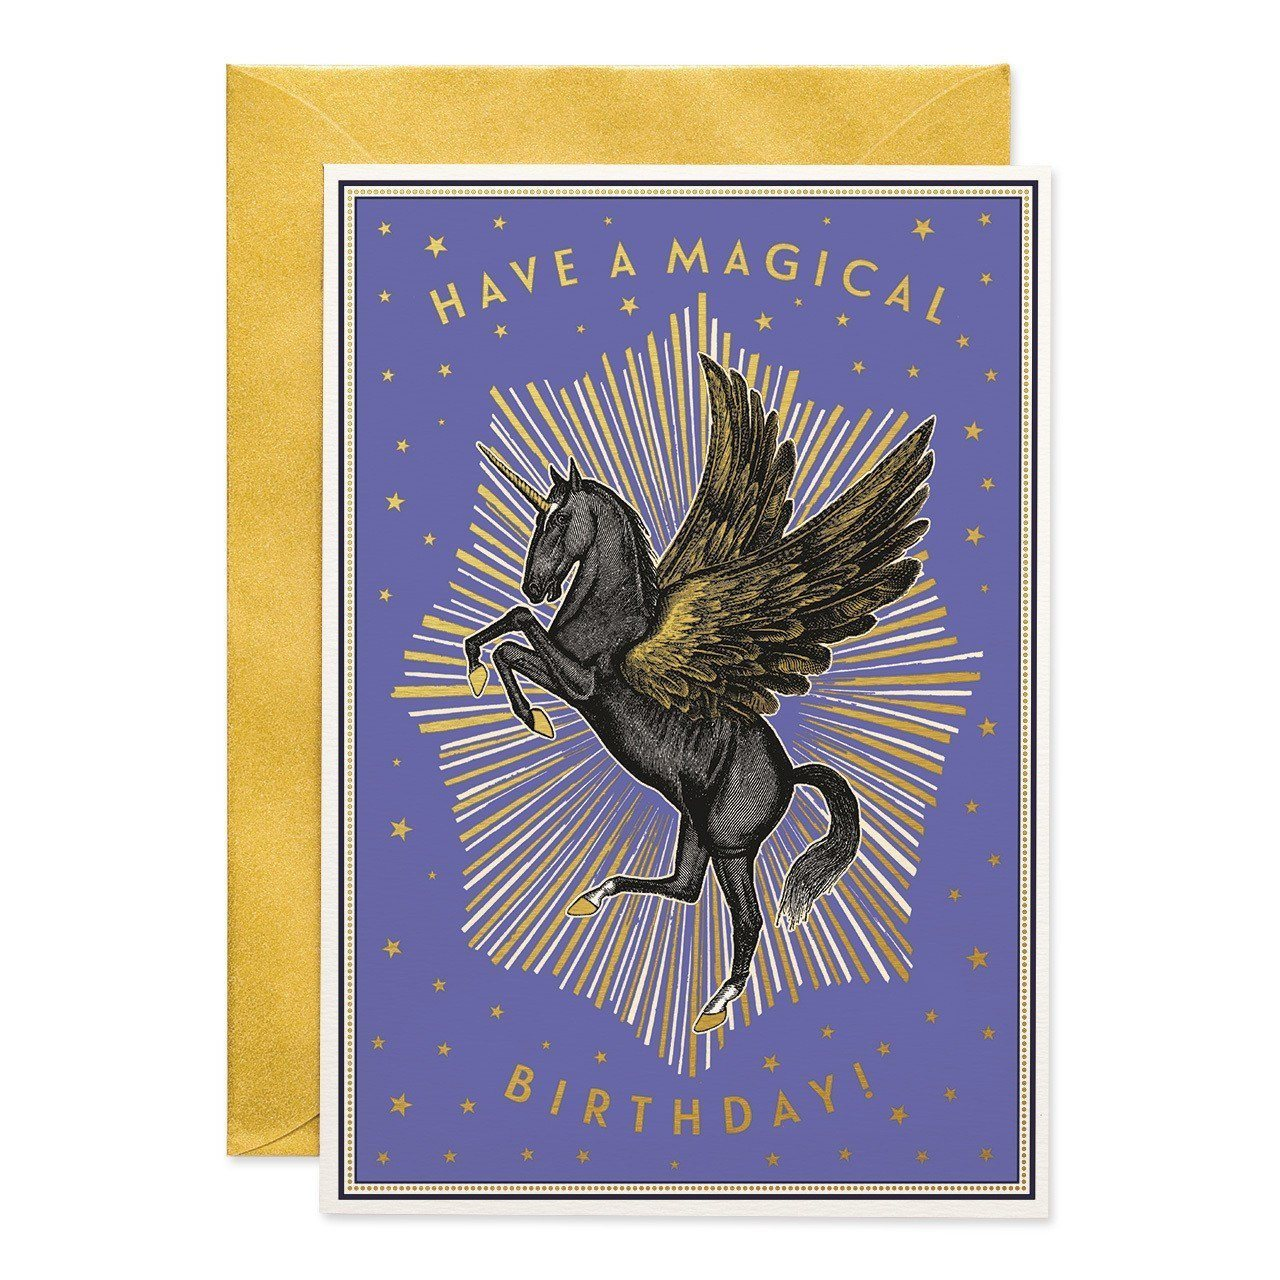 Have a Magical Birthday greeting card - Chase and Wonder - Proudly Made in Britain